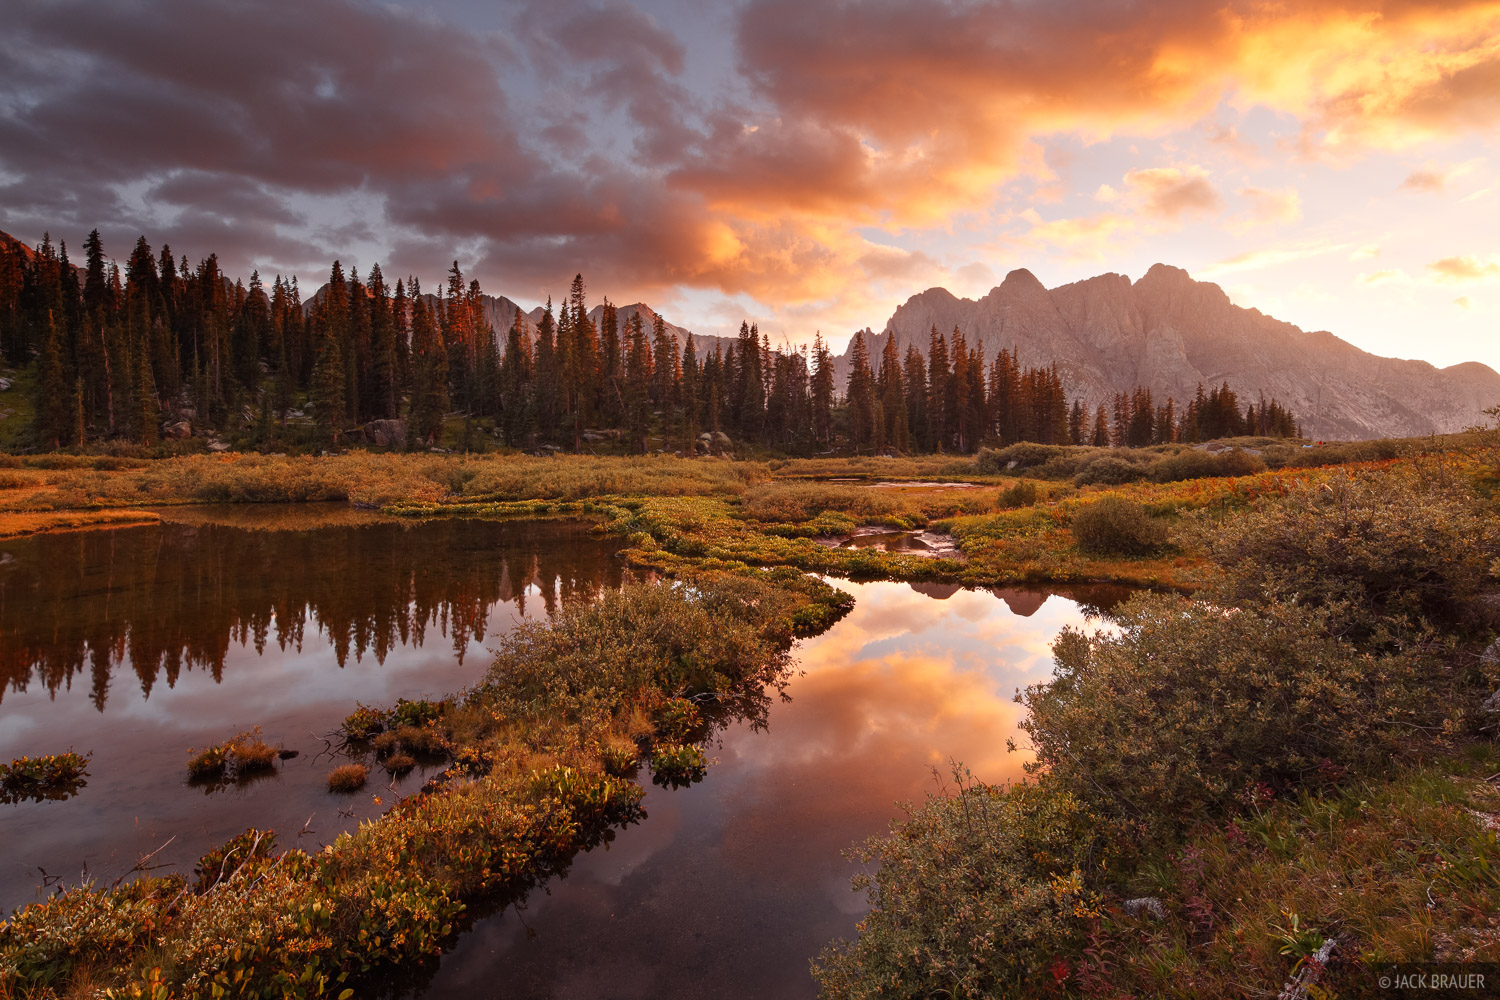 A fiery sunset over a remote valley in the Weminuche Wilderness.